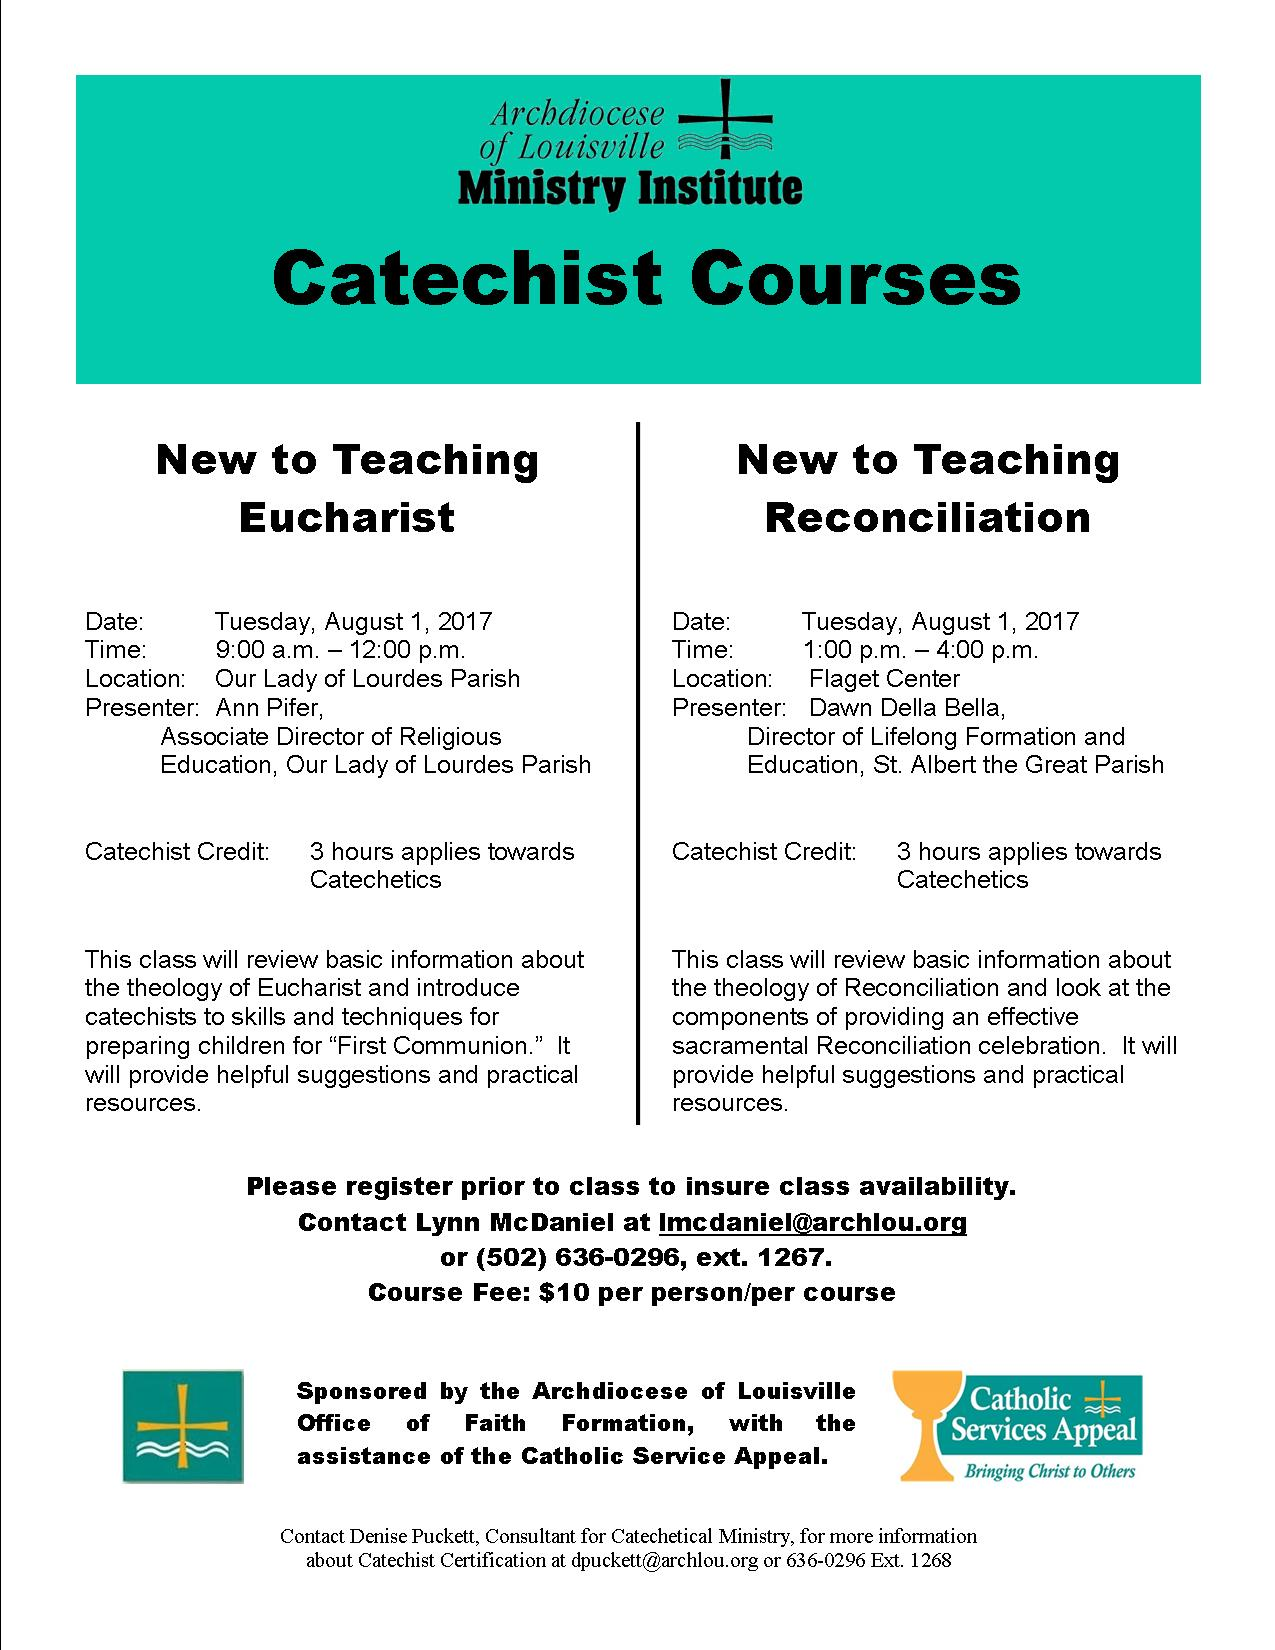 Upcoming Catechist Classes Formed In Faith